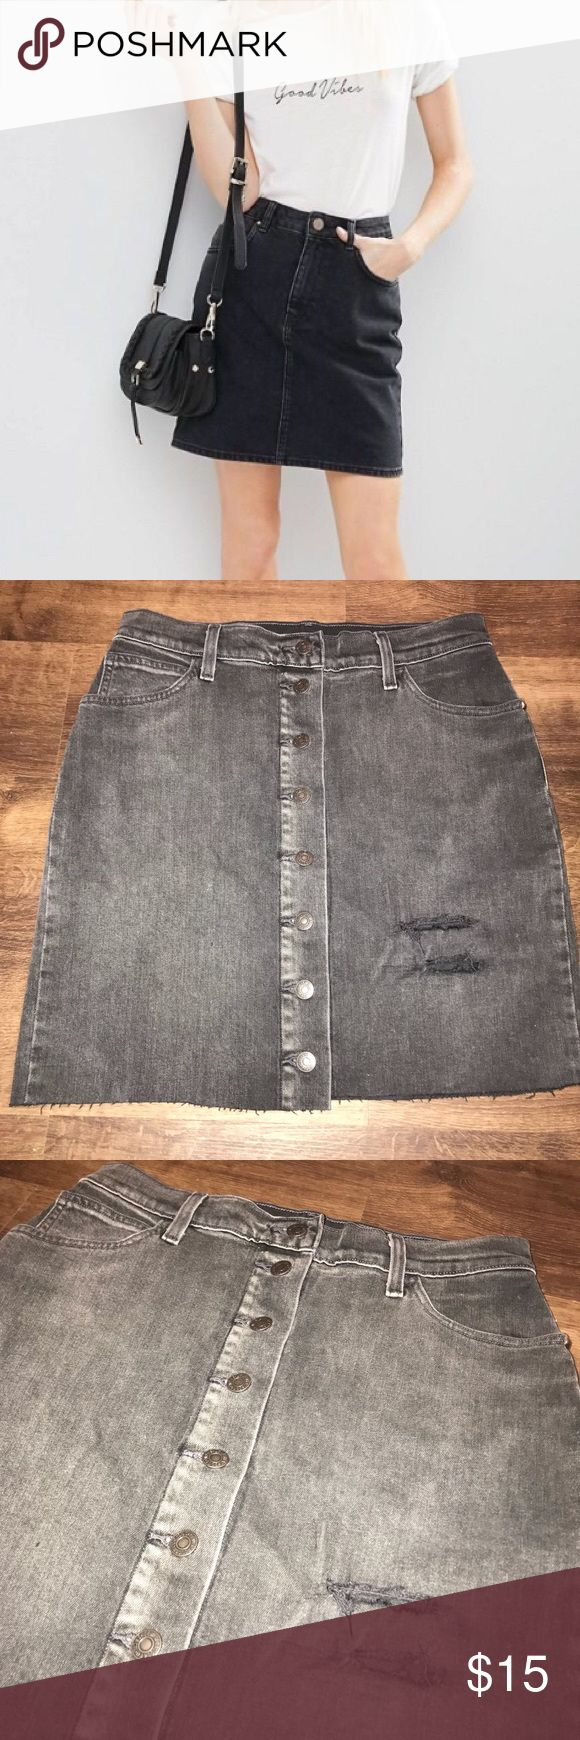 Levi's Vintage Everyday Distressed Denim Skirt Levi's Grey Distressed Denim Skirt Size 28 Length measures @ 18.5 inches  Button up front  Stretchy & comfortable  99% cotton  **model picture is not the item for sale, just a similar look Levi's Skirts Mini